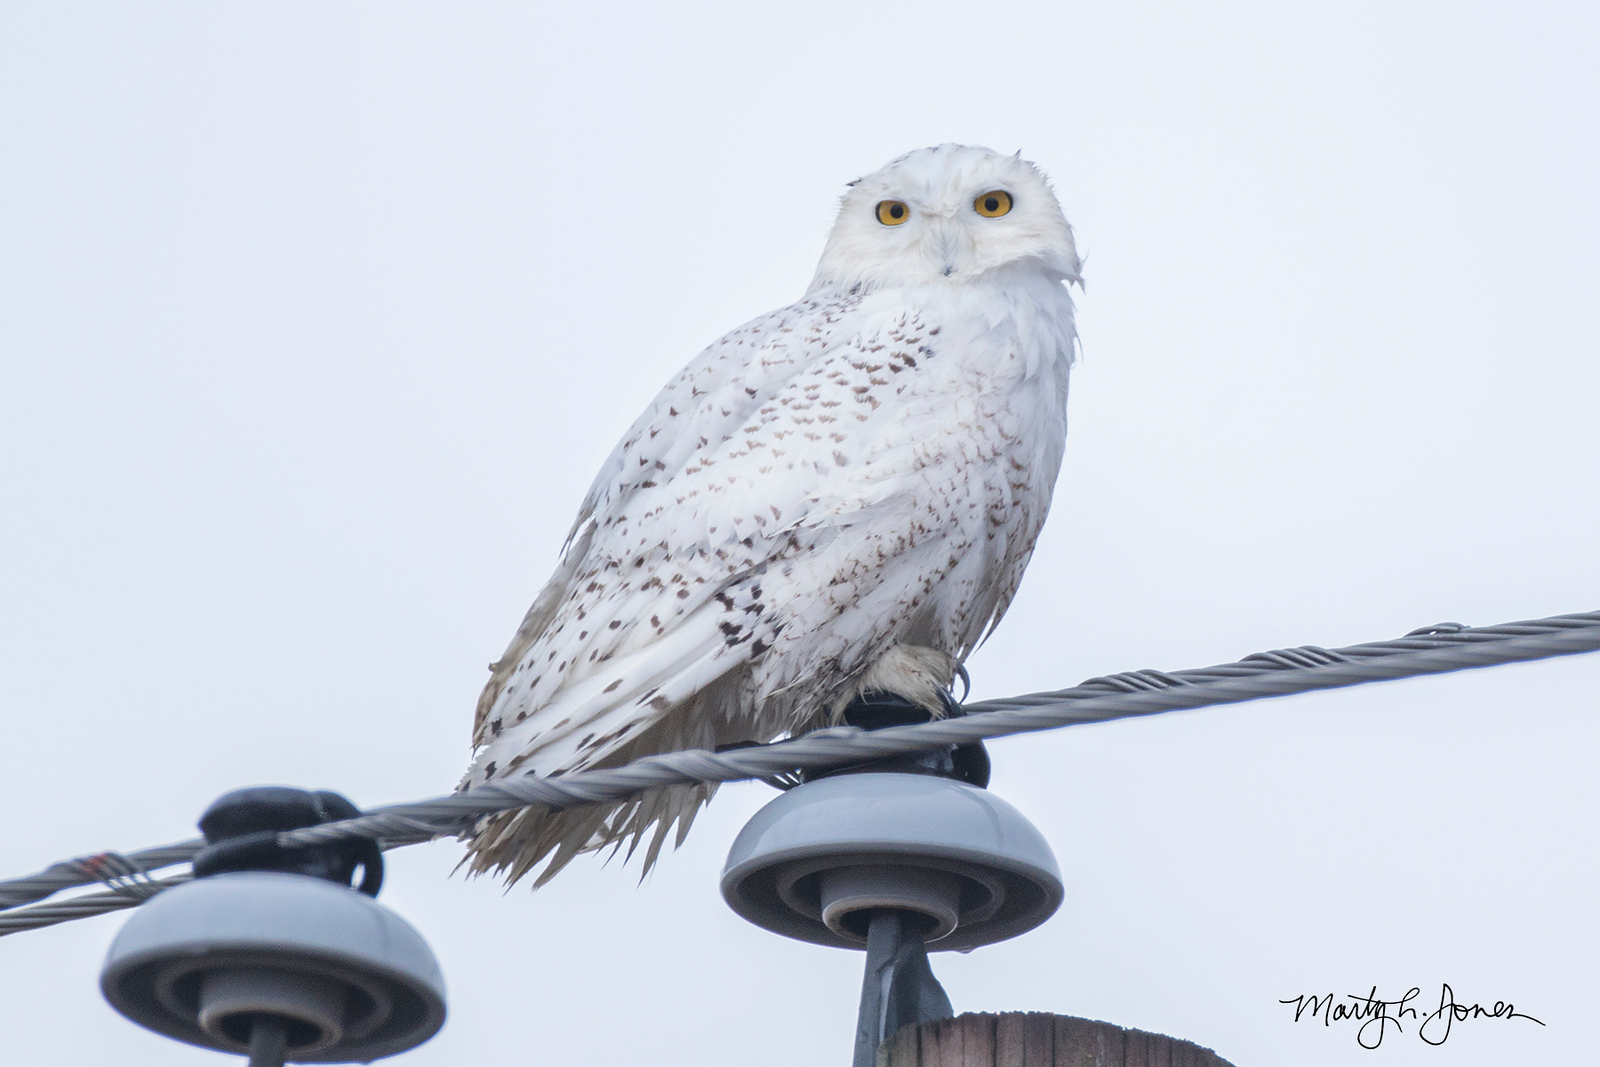 I found this owl while driving to work on the morning of February 14, 2018.  First seen on the ground and then flew to utility pole located at mile marker 67 on highway 41, Knox County, Indiana.  Seen later by Gary and Lisa Bowman, Judy Harrison, and Evan Speck.